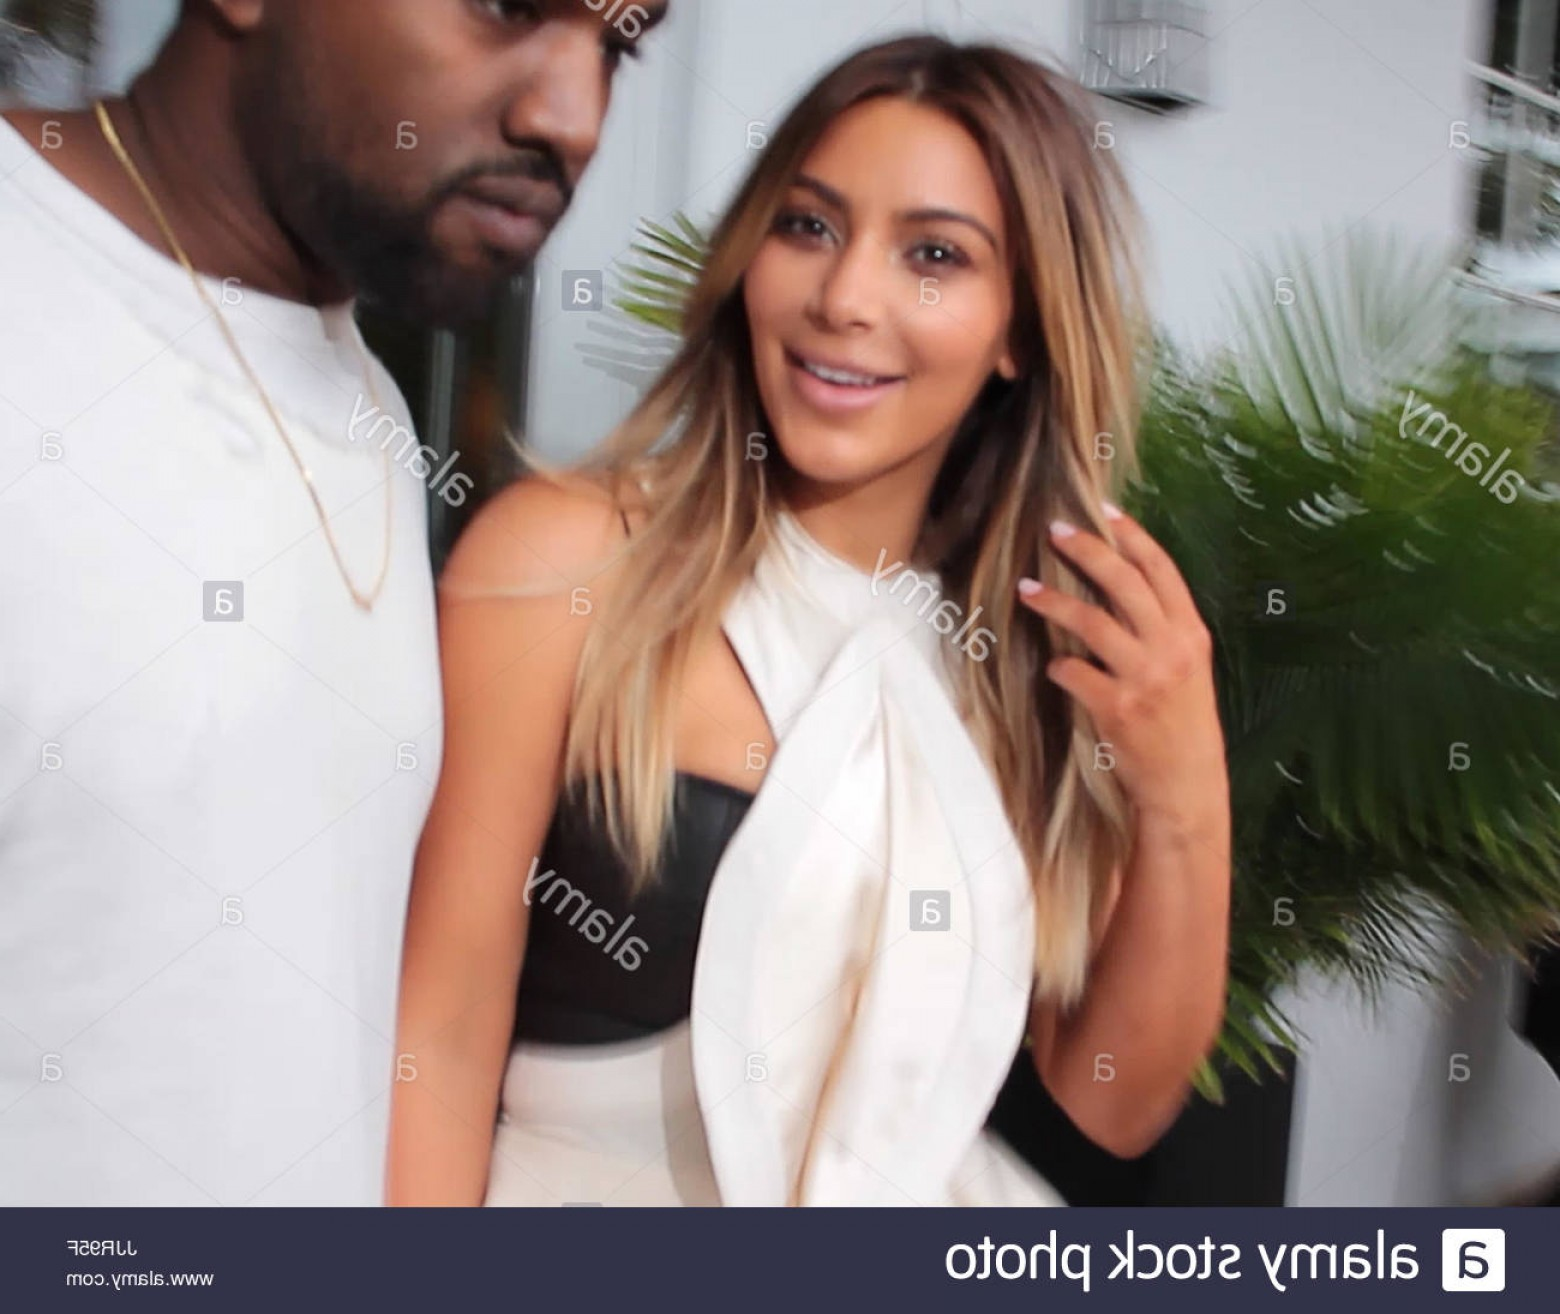 Kanye West Vector Paintig: Stock Photo Kim Kardashian And Kanye West Kim And Kanye Are Smiling With Surprise